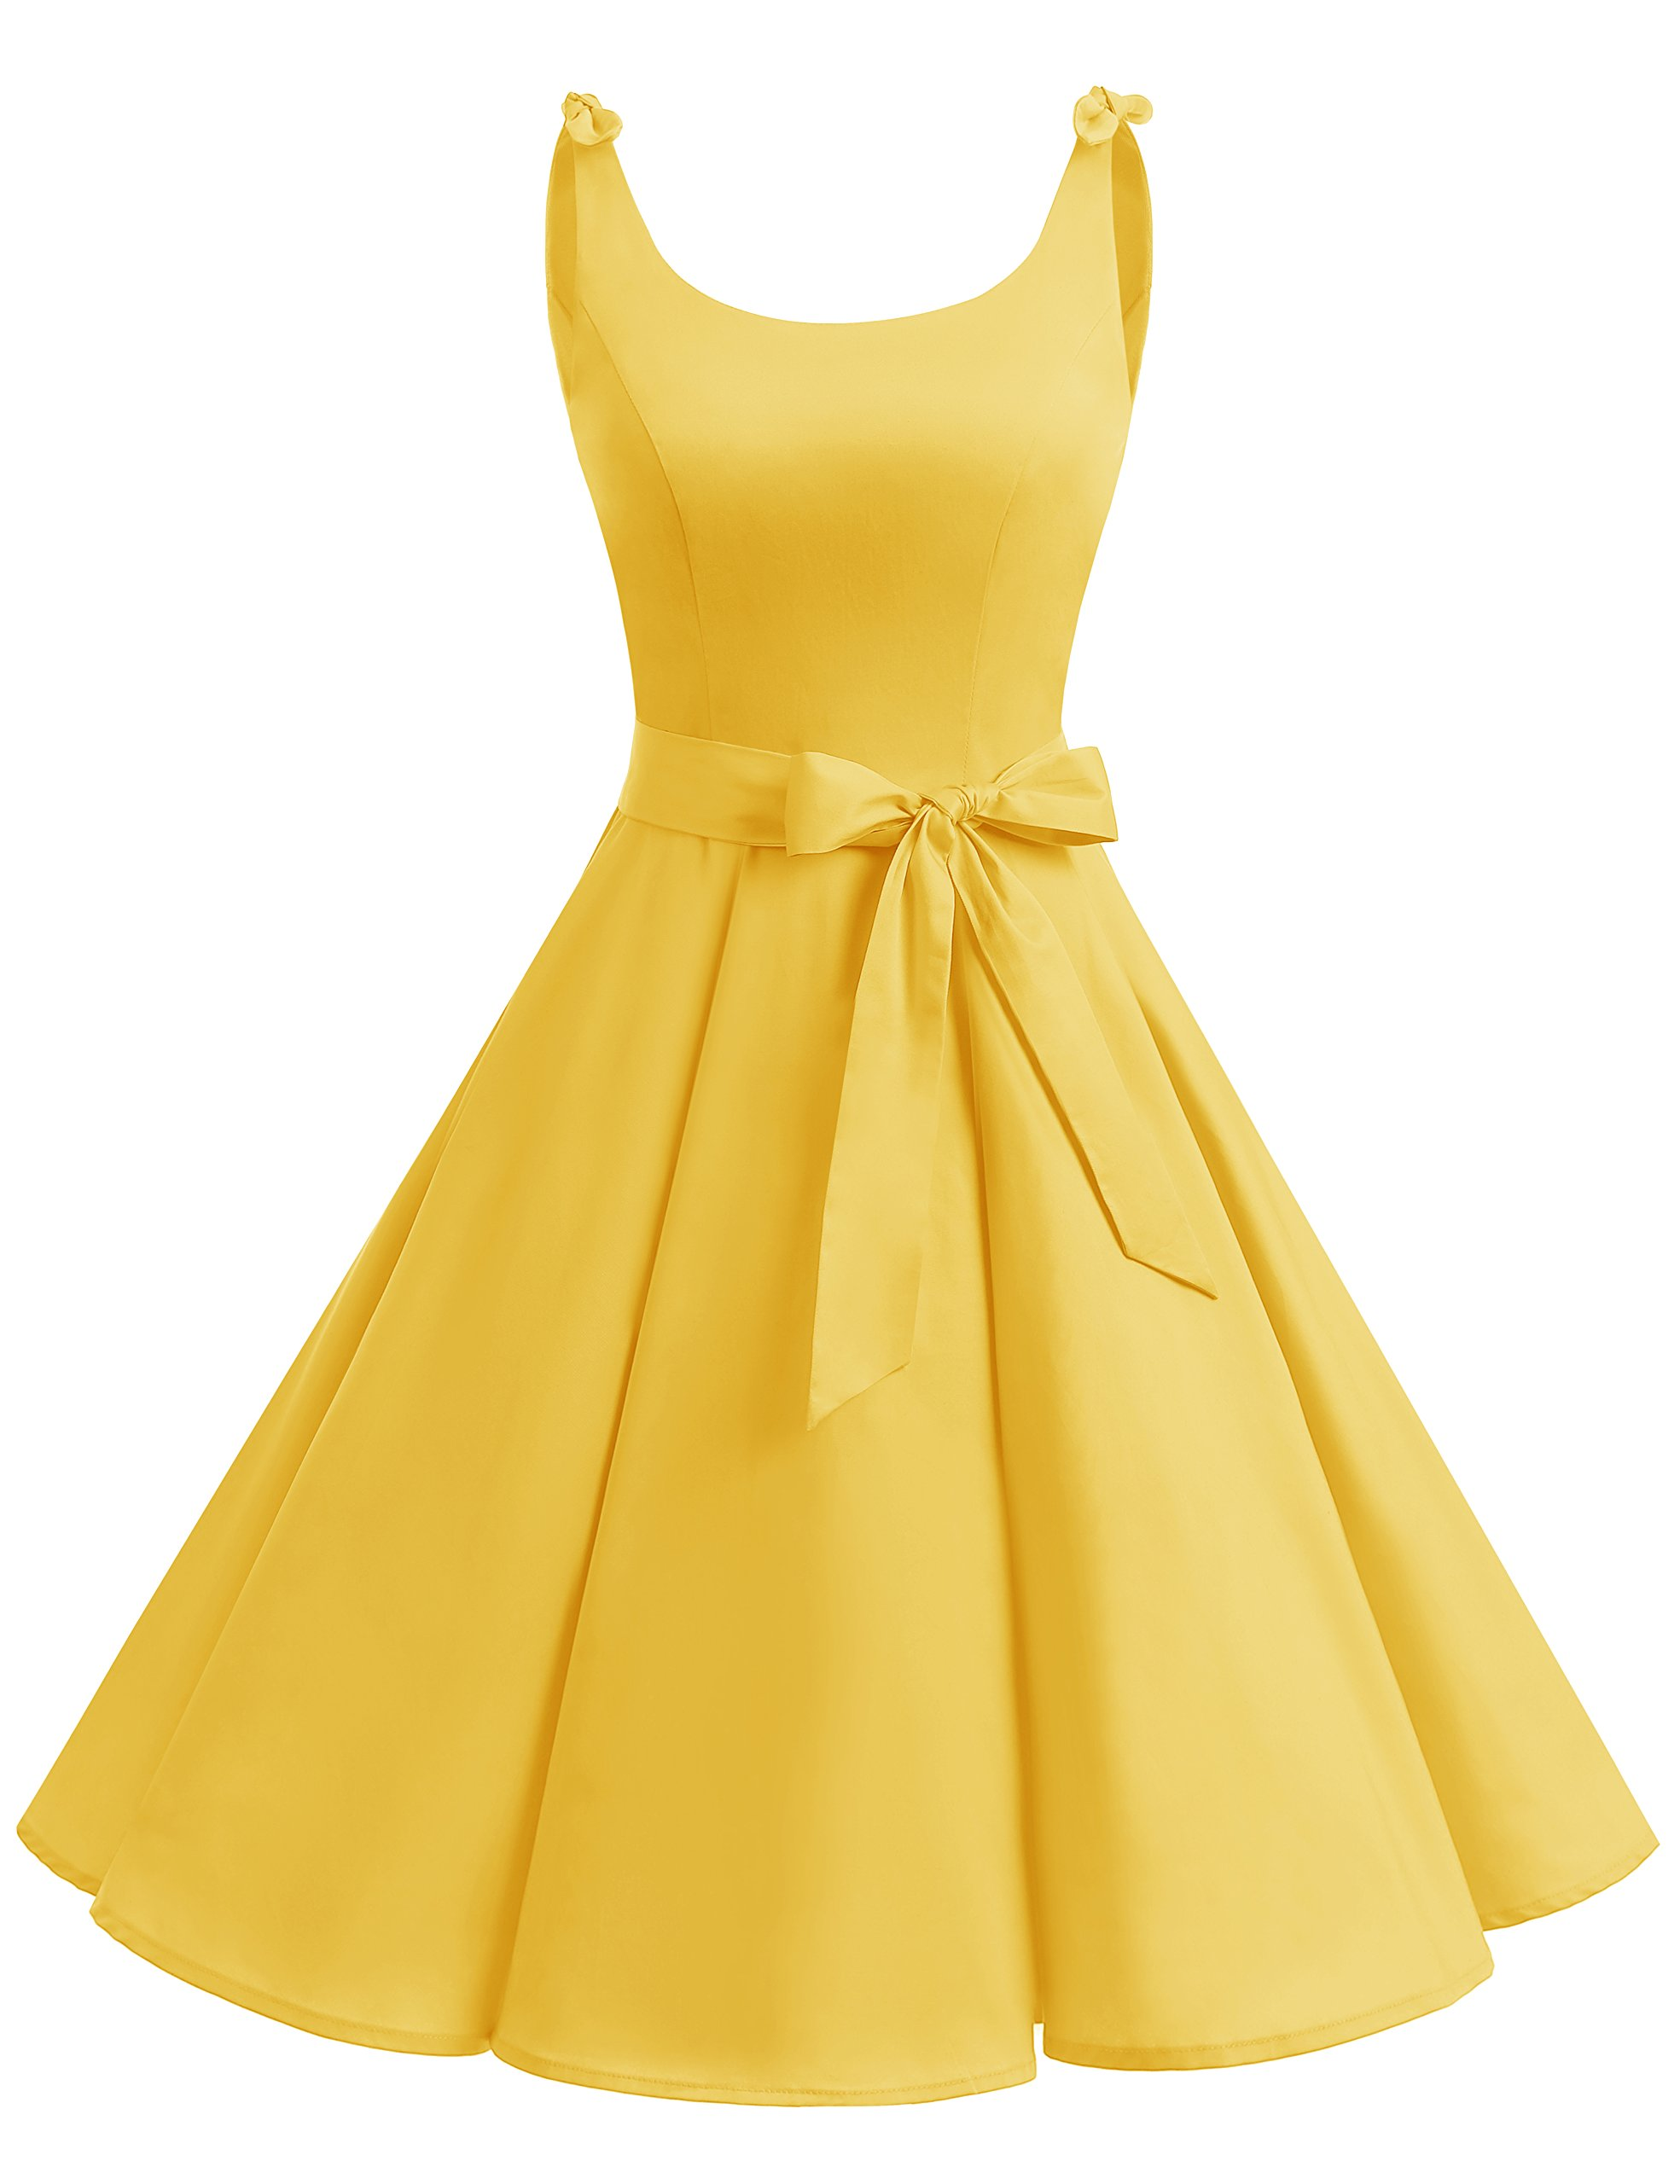 Bbonlinedress 1950's Bowknot Vintage Retro Polka Dot Rockabilly Swing Dress Yellow L by Bbonlinedress